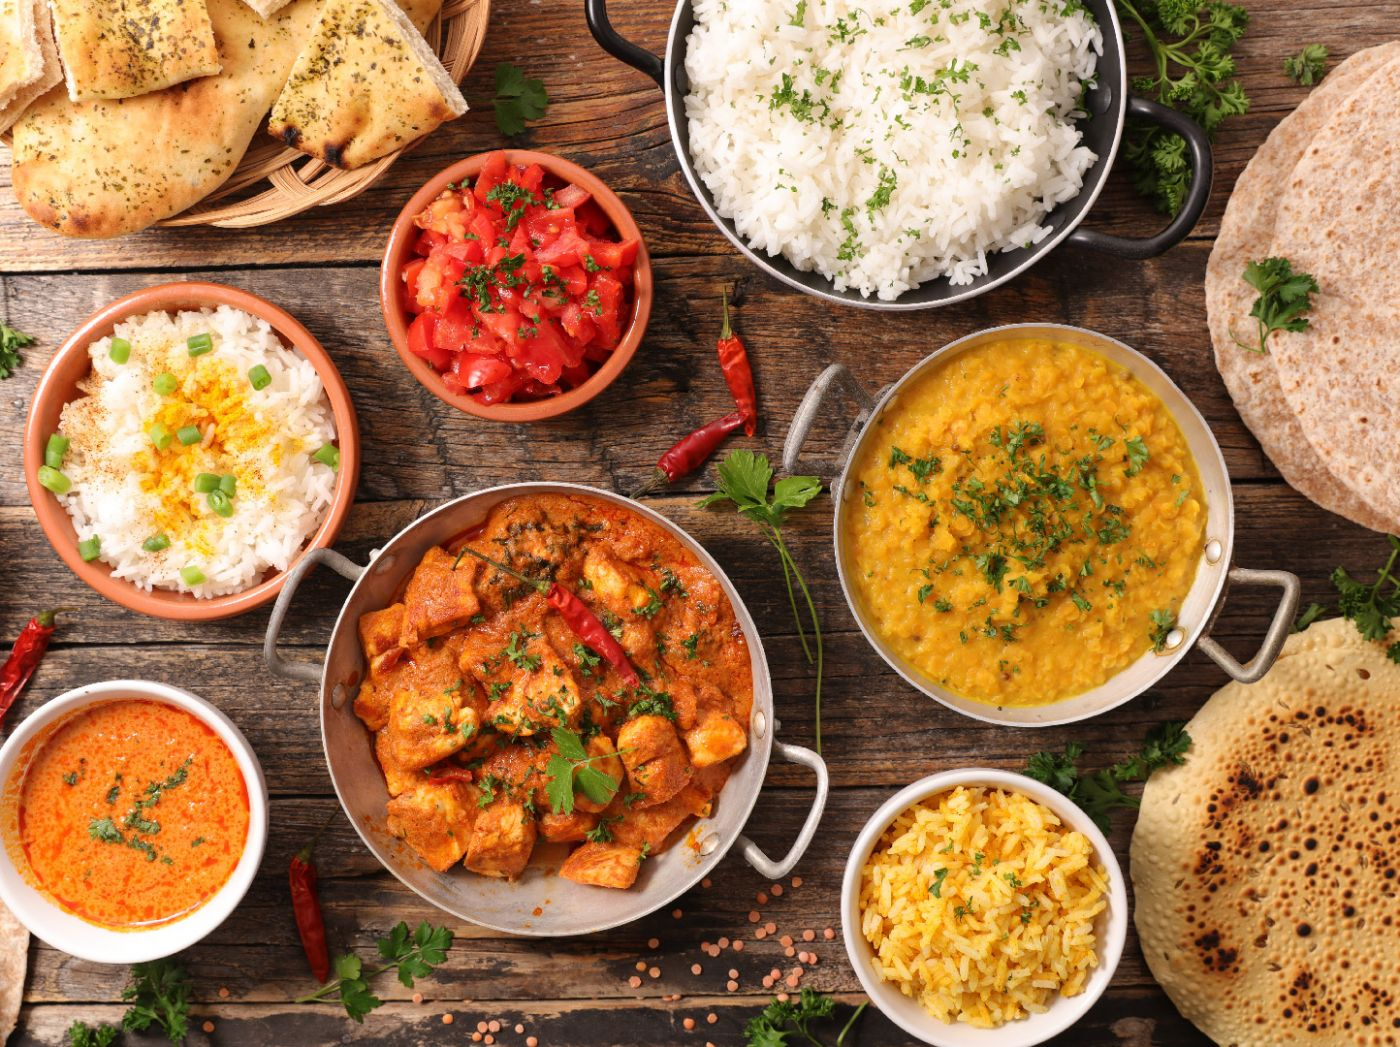 Top 12 Indian Dishes And Recipes || The Most Popular Indian Food - Food Recipes Indian